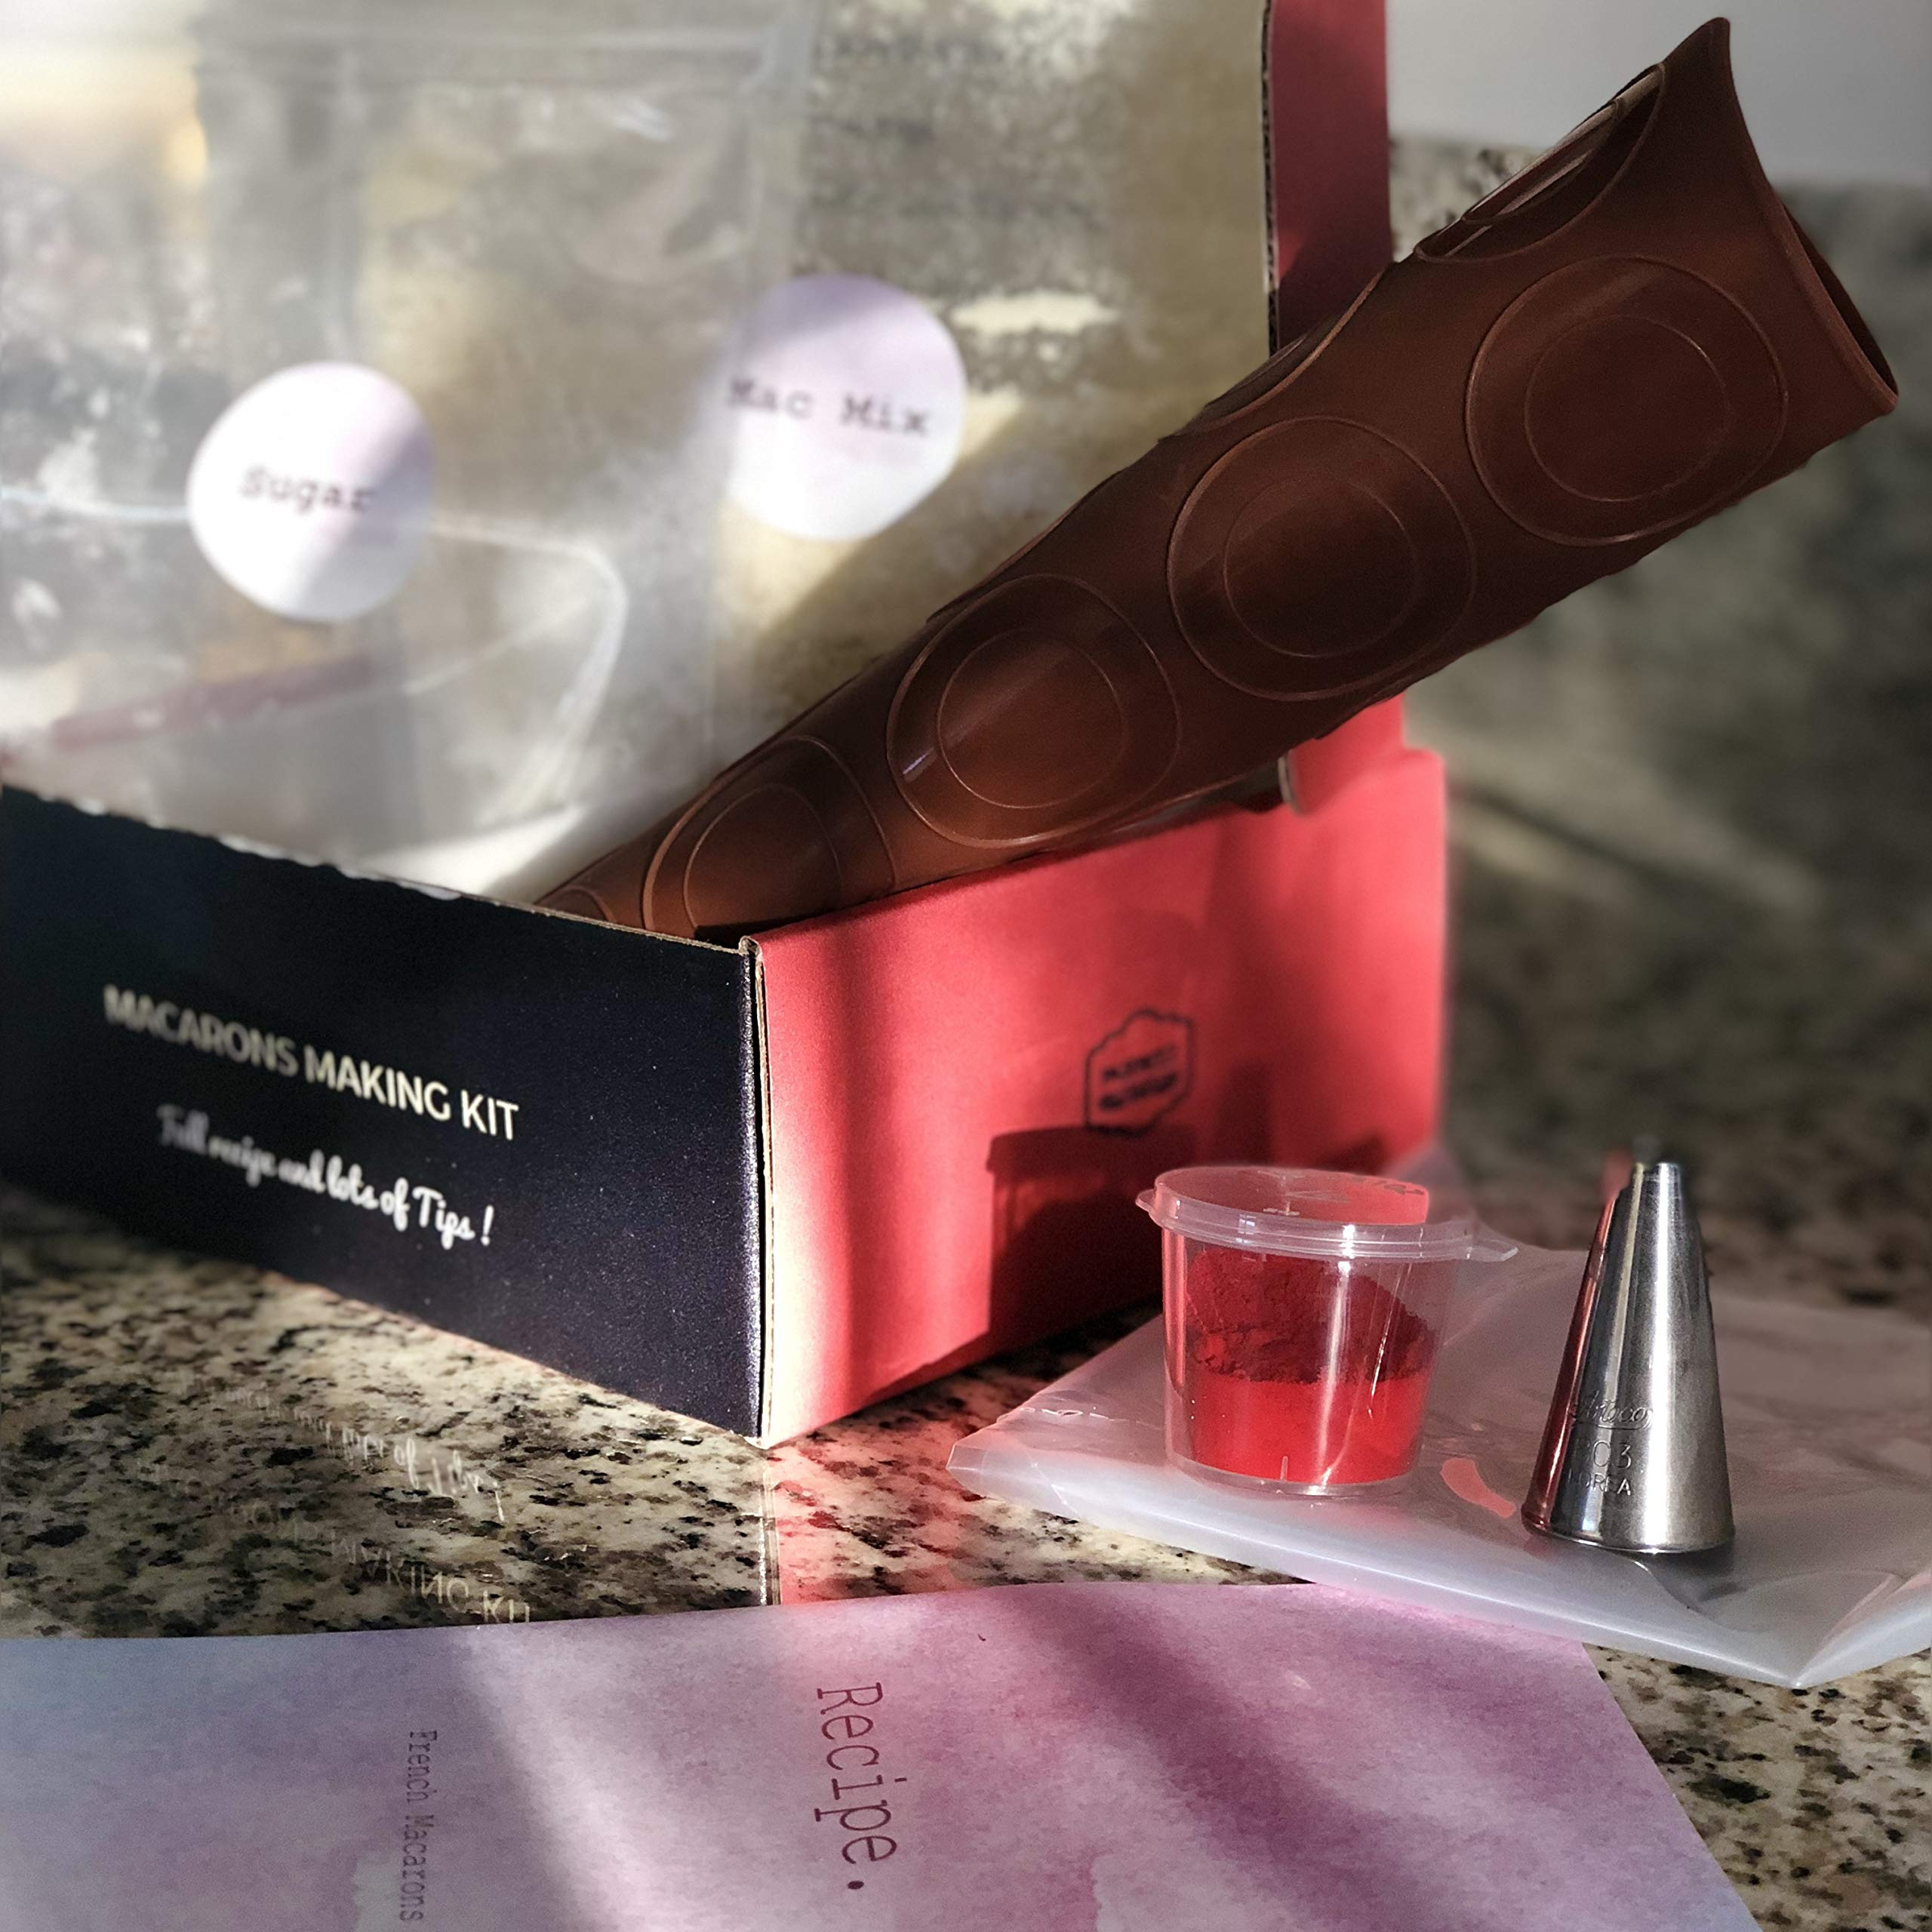 Red Velvet Macaron DIY Making Kit - by French Chefs from Paris - Including Tools and Recipe Tips - Make Macaroons easily at Home